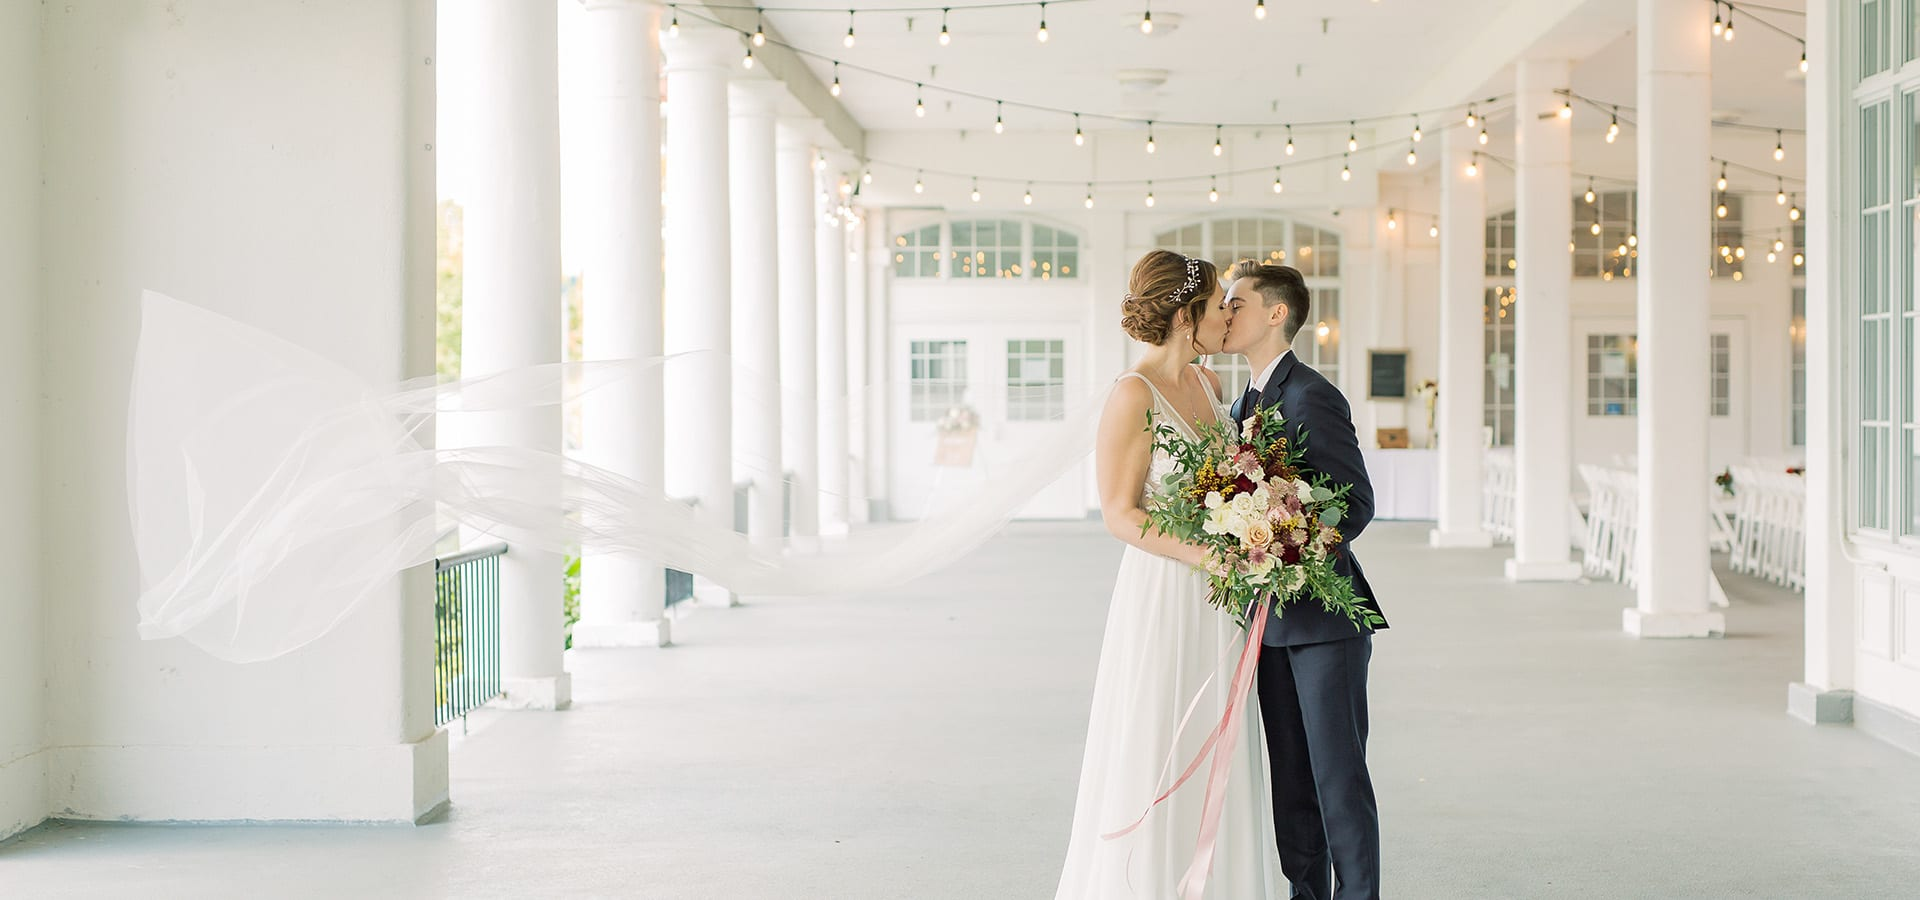 Hero image for Jessie and Jess' Intimate Ceremony at LaSalle Banquet Centre